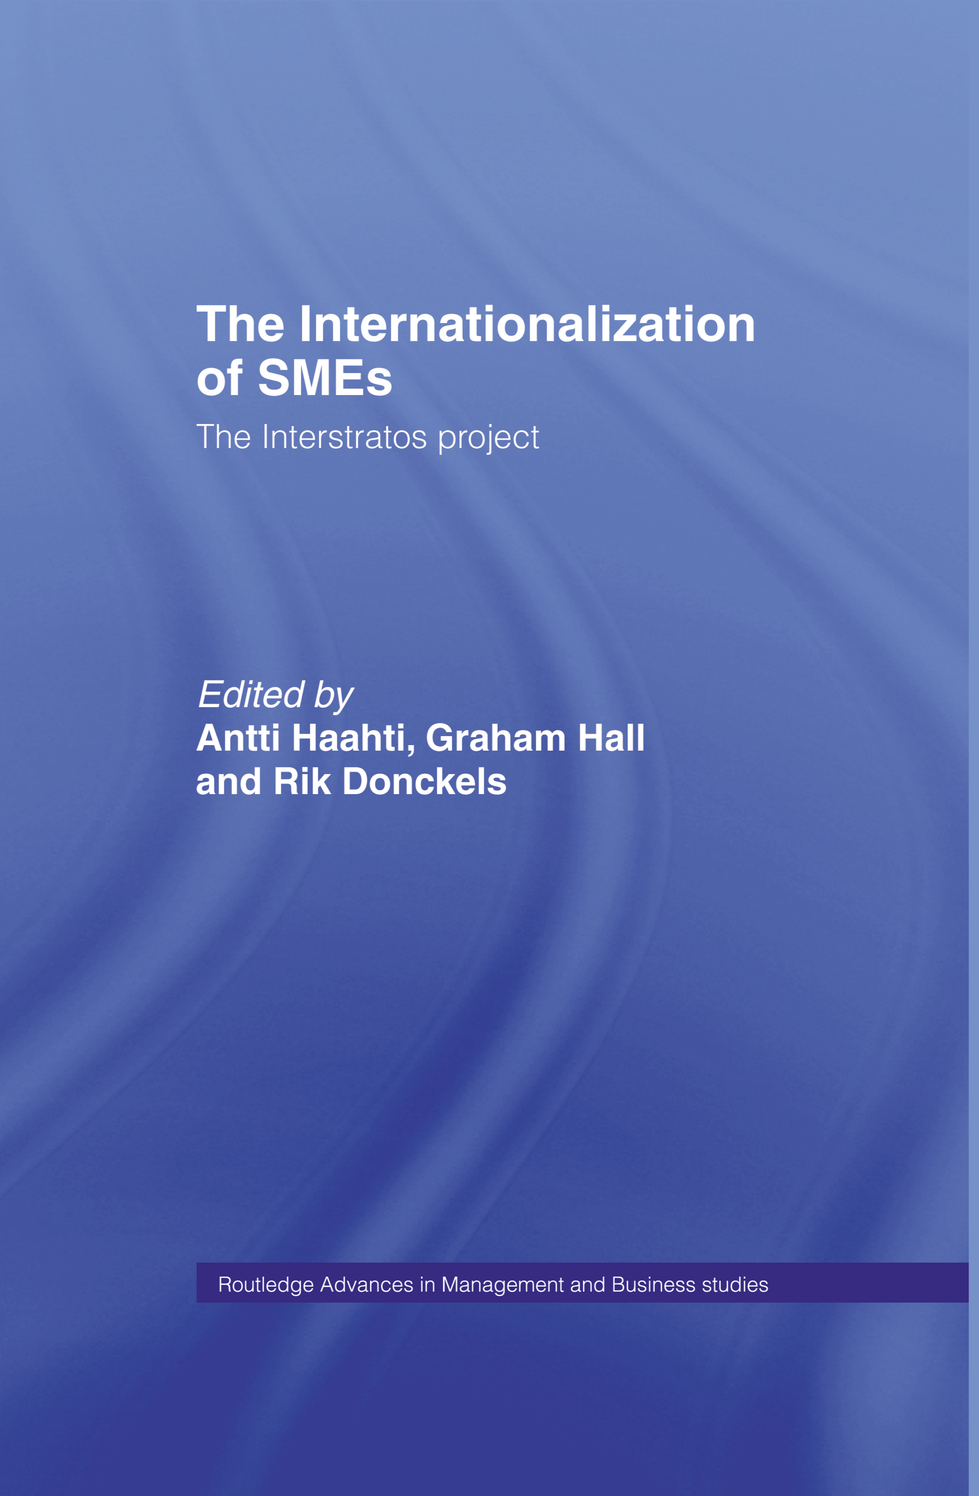 The Internationalization of Small to Medium Enterprises The Interstratos Project